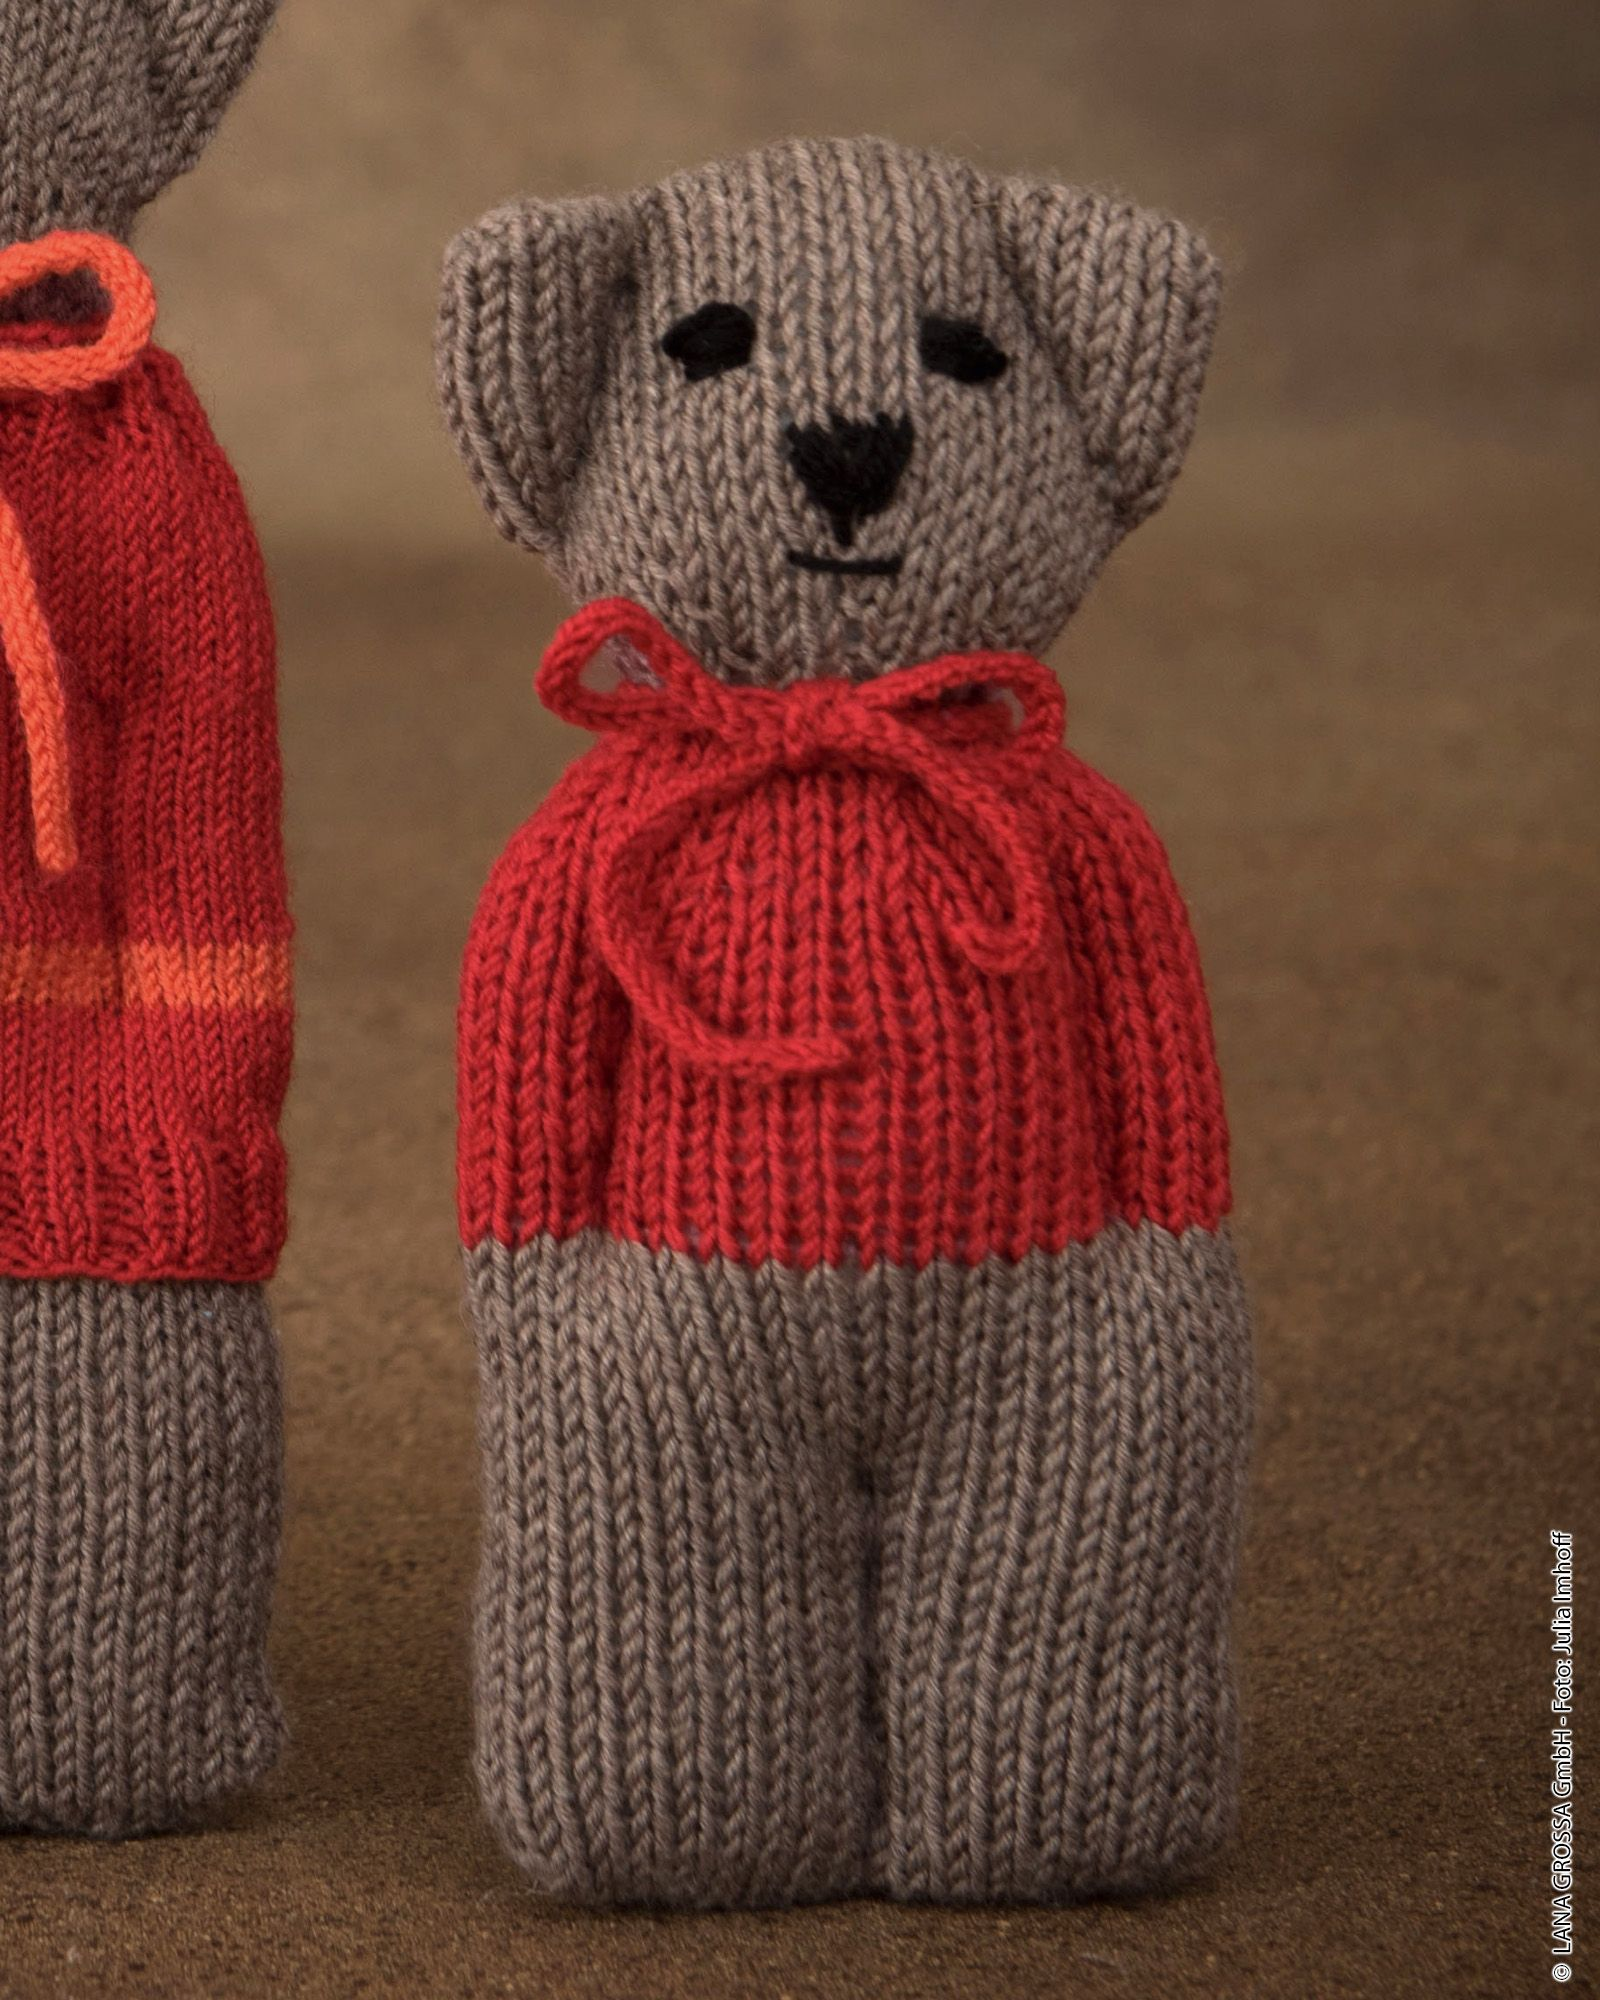 Cool Wool Big Mélange und Cool Wool Baby Babybär – WOOLPLACE #knittedtoys